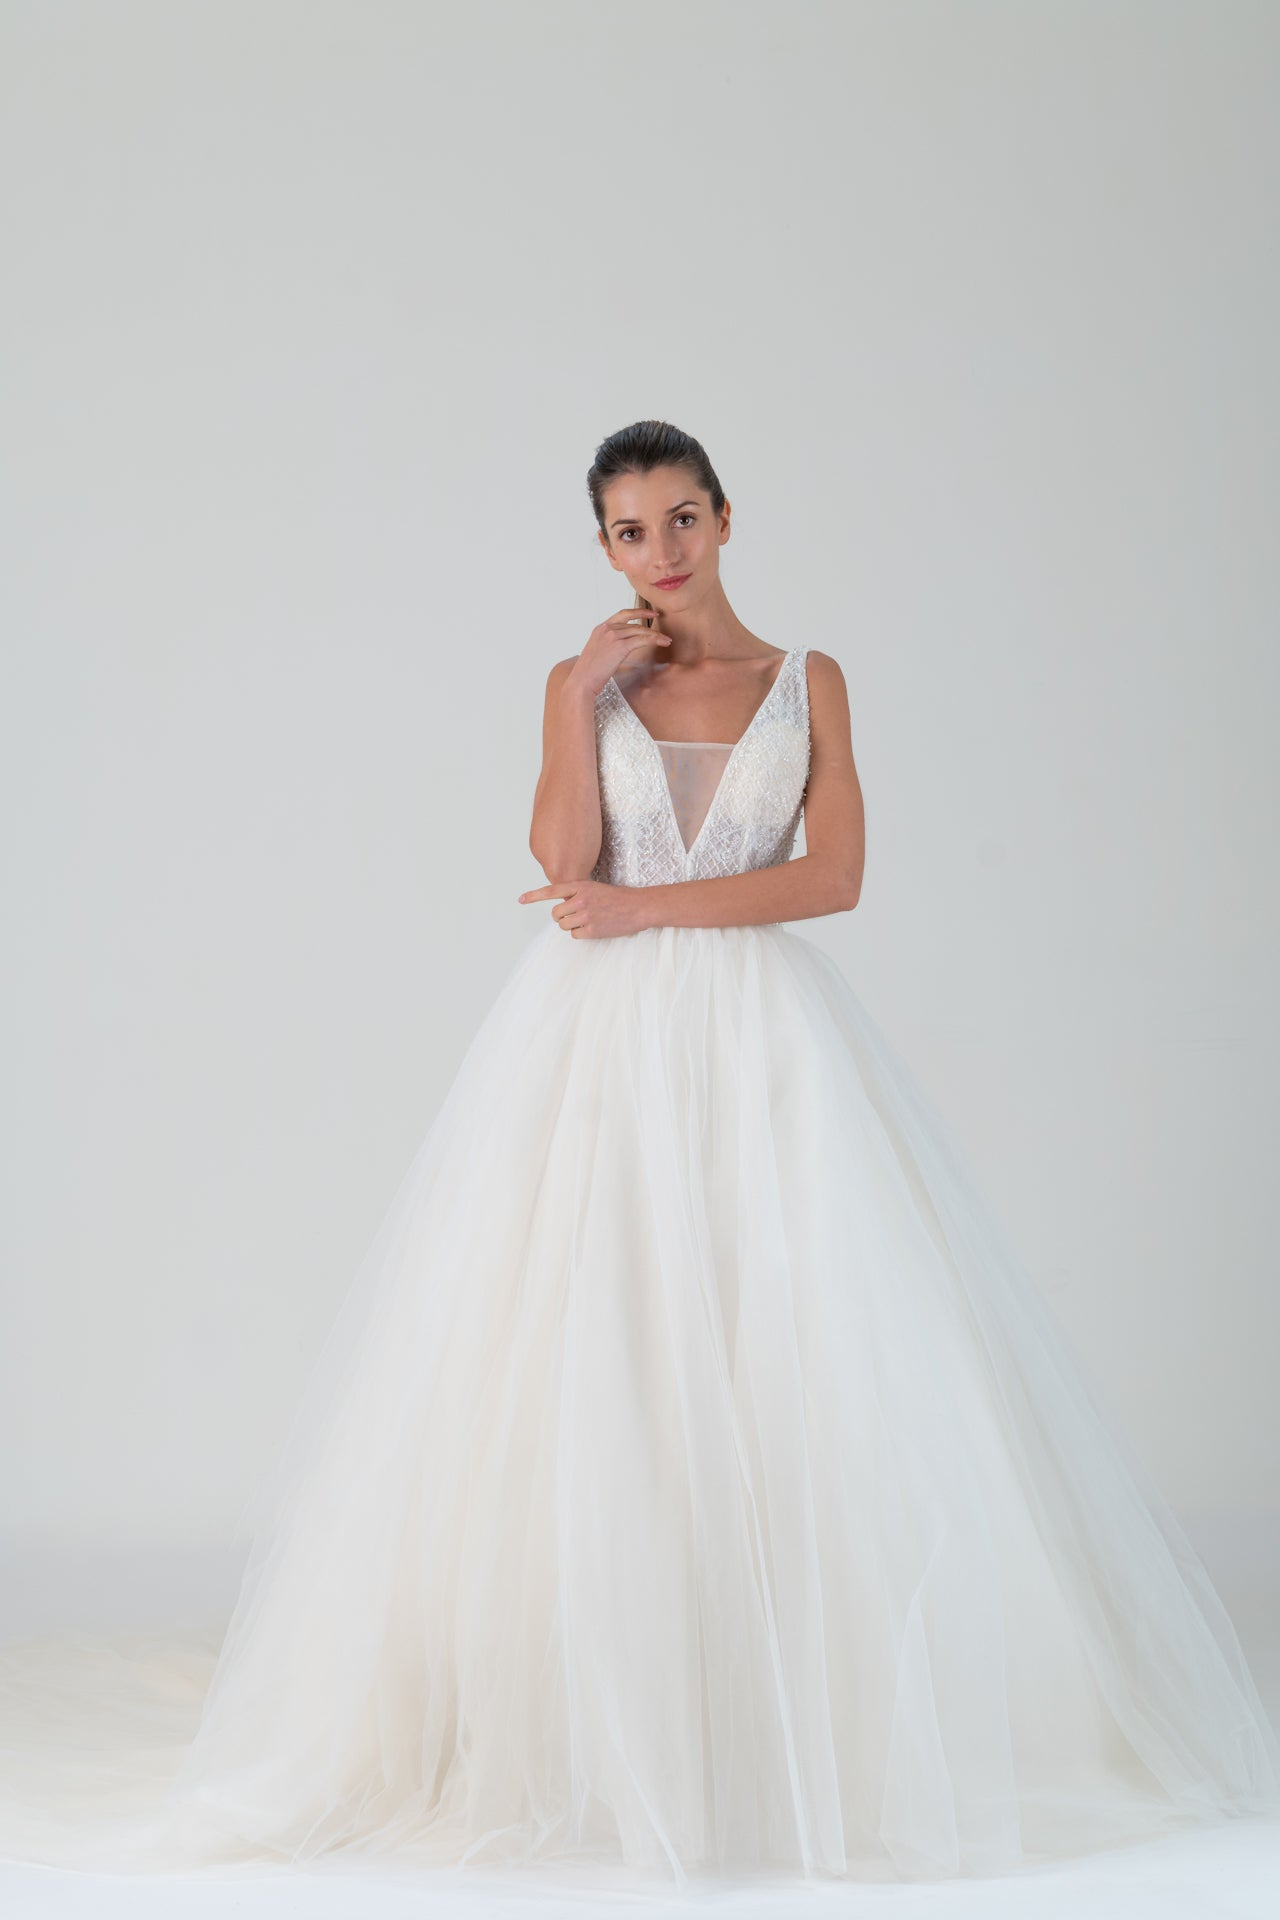 Qipology White Sleeveless Beaded Bodice Ballgown Tulle Wedding Dress